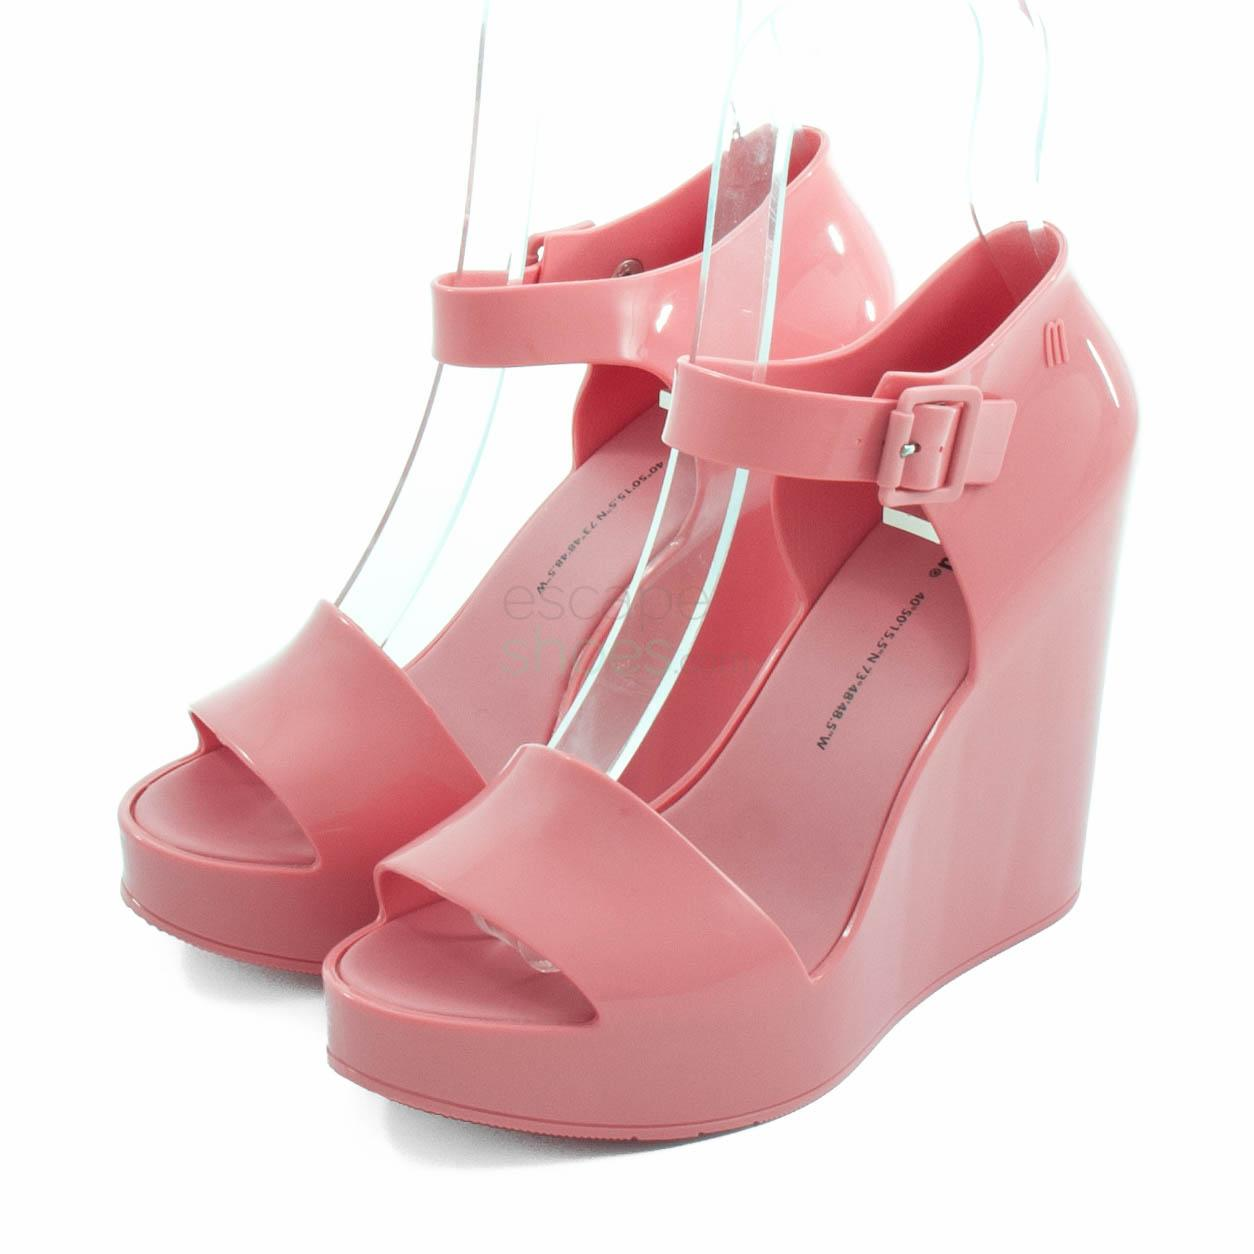 302d44ae62c Buy your Sandals MELISSA Mar Wedge Pink MW.18.042B here